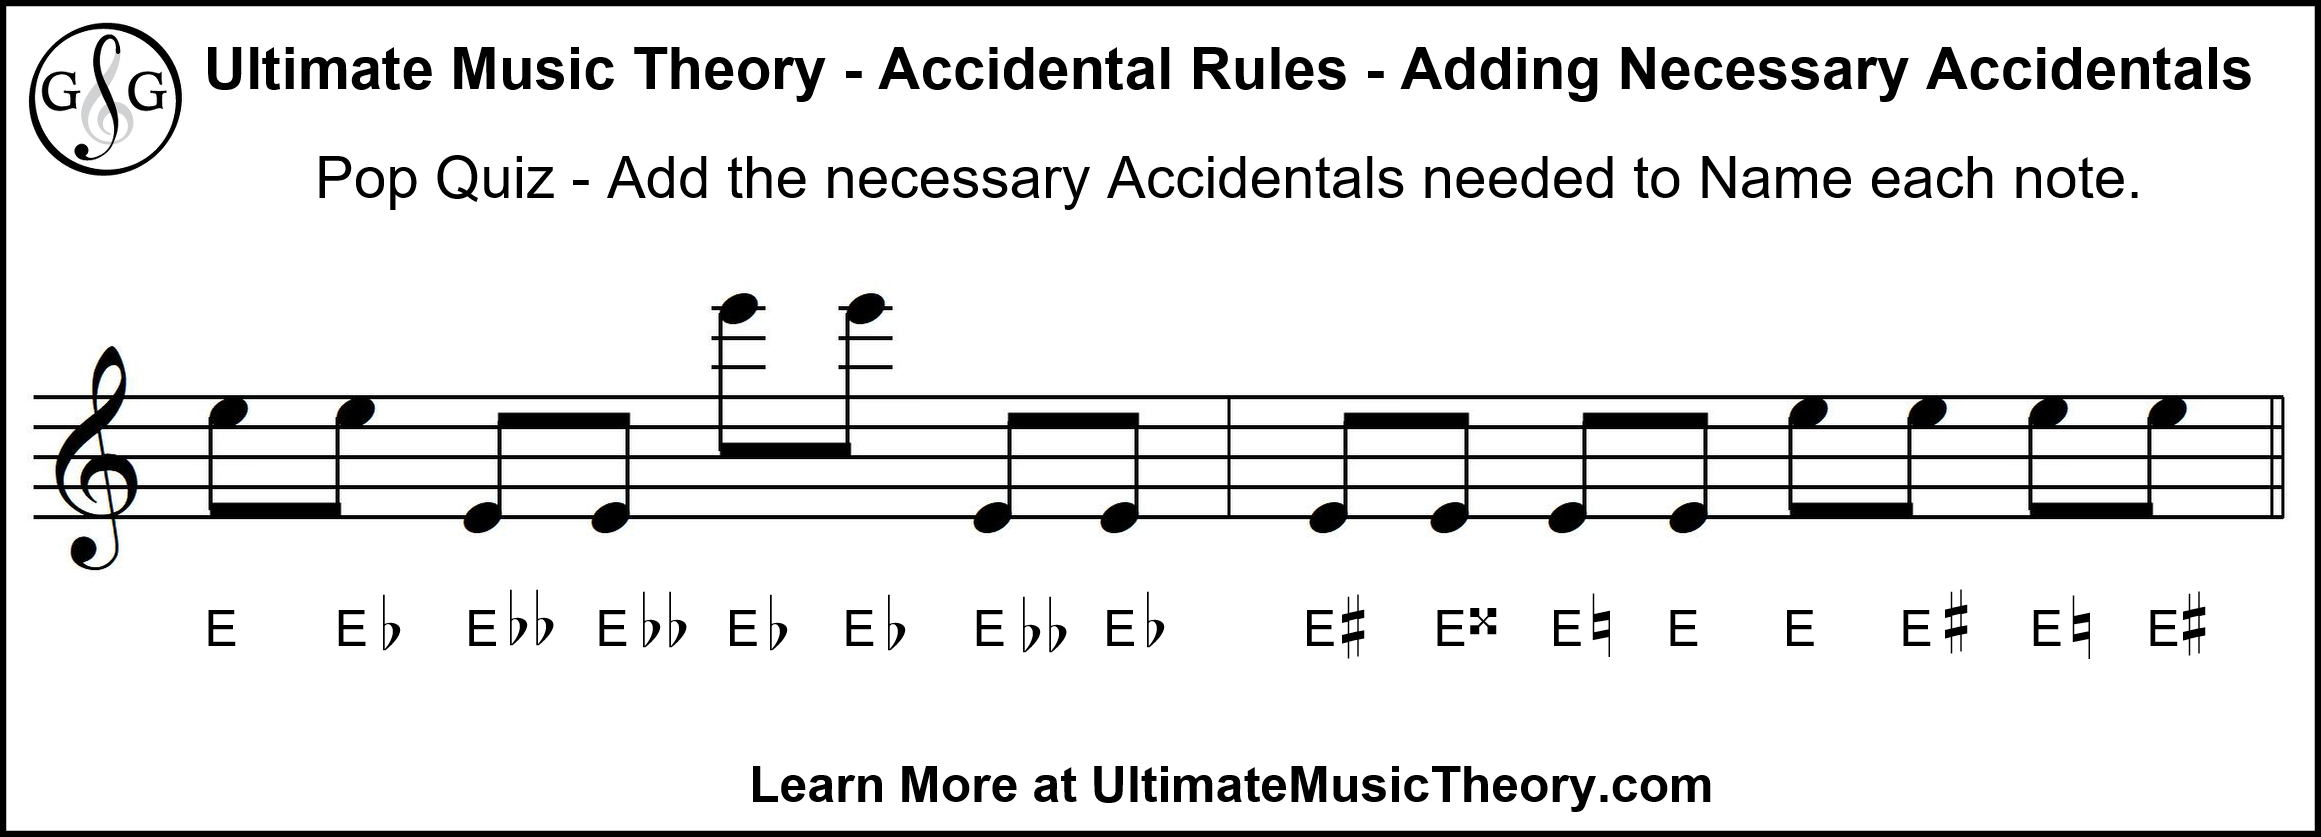 Ultimate Music Theory Pop Quiz Adding Necessary Accidentals